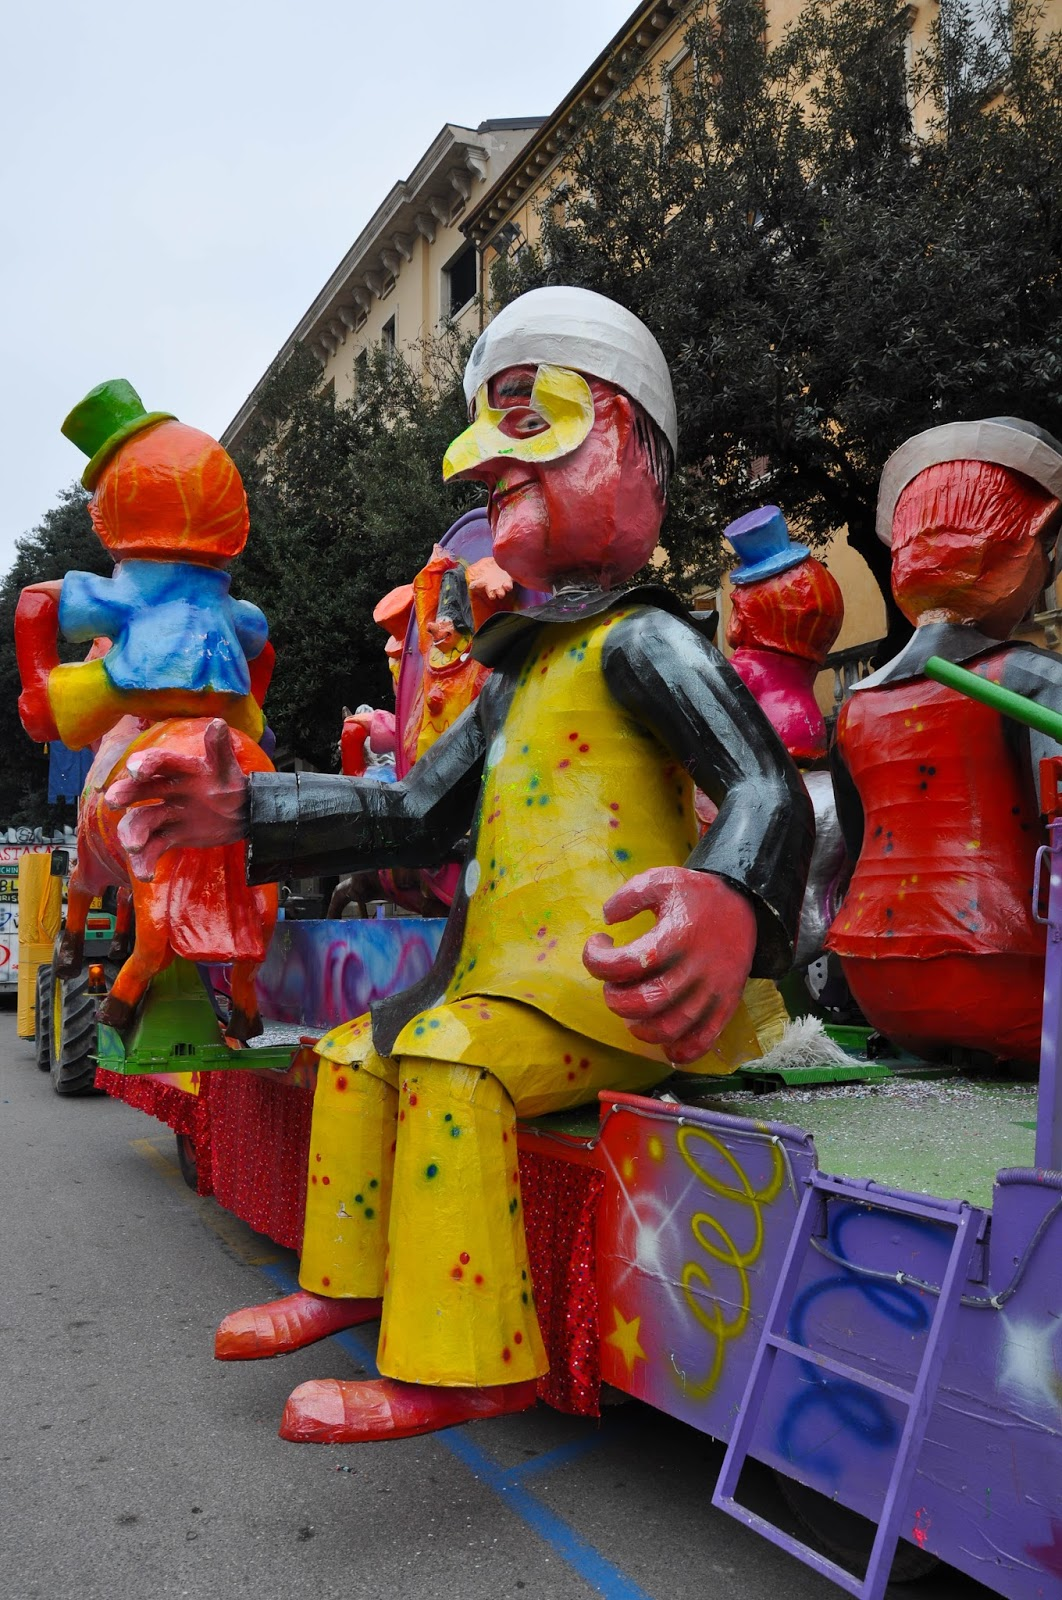 Huge papier mache figures - part of a float at Verona Carnival